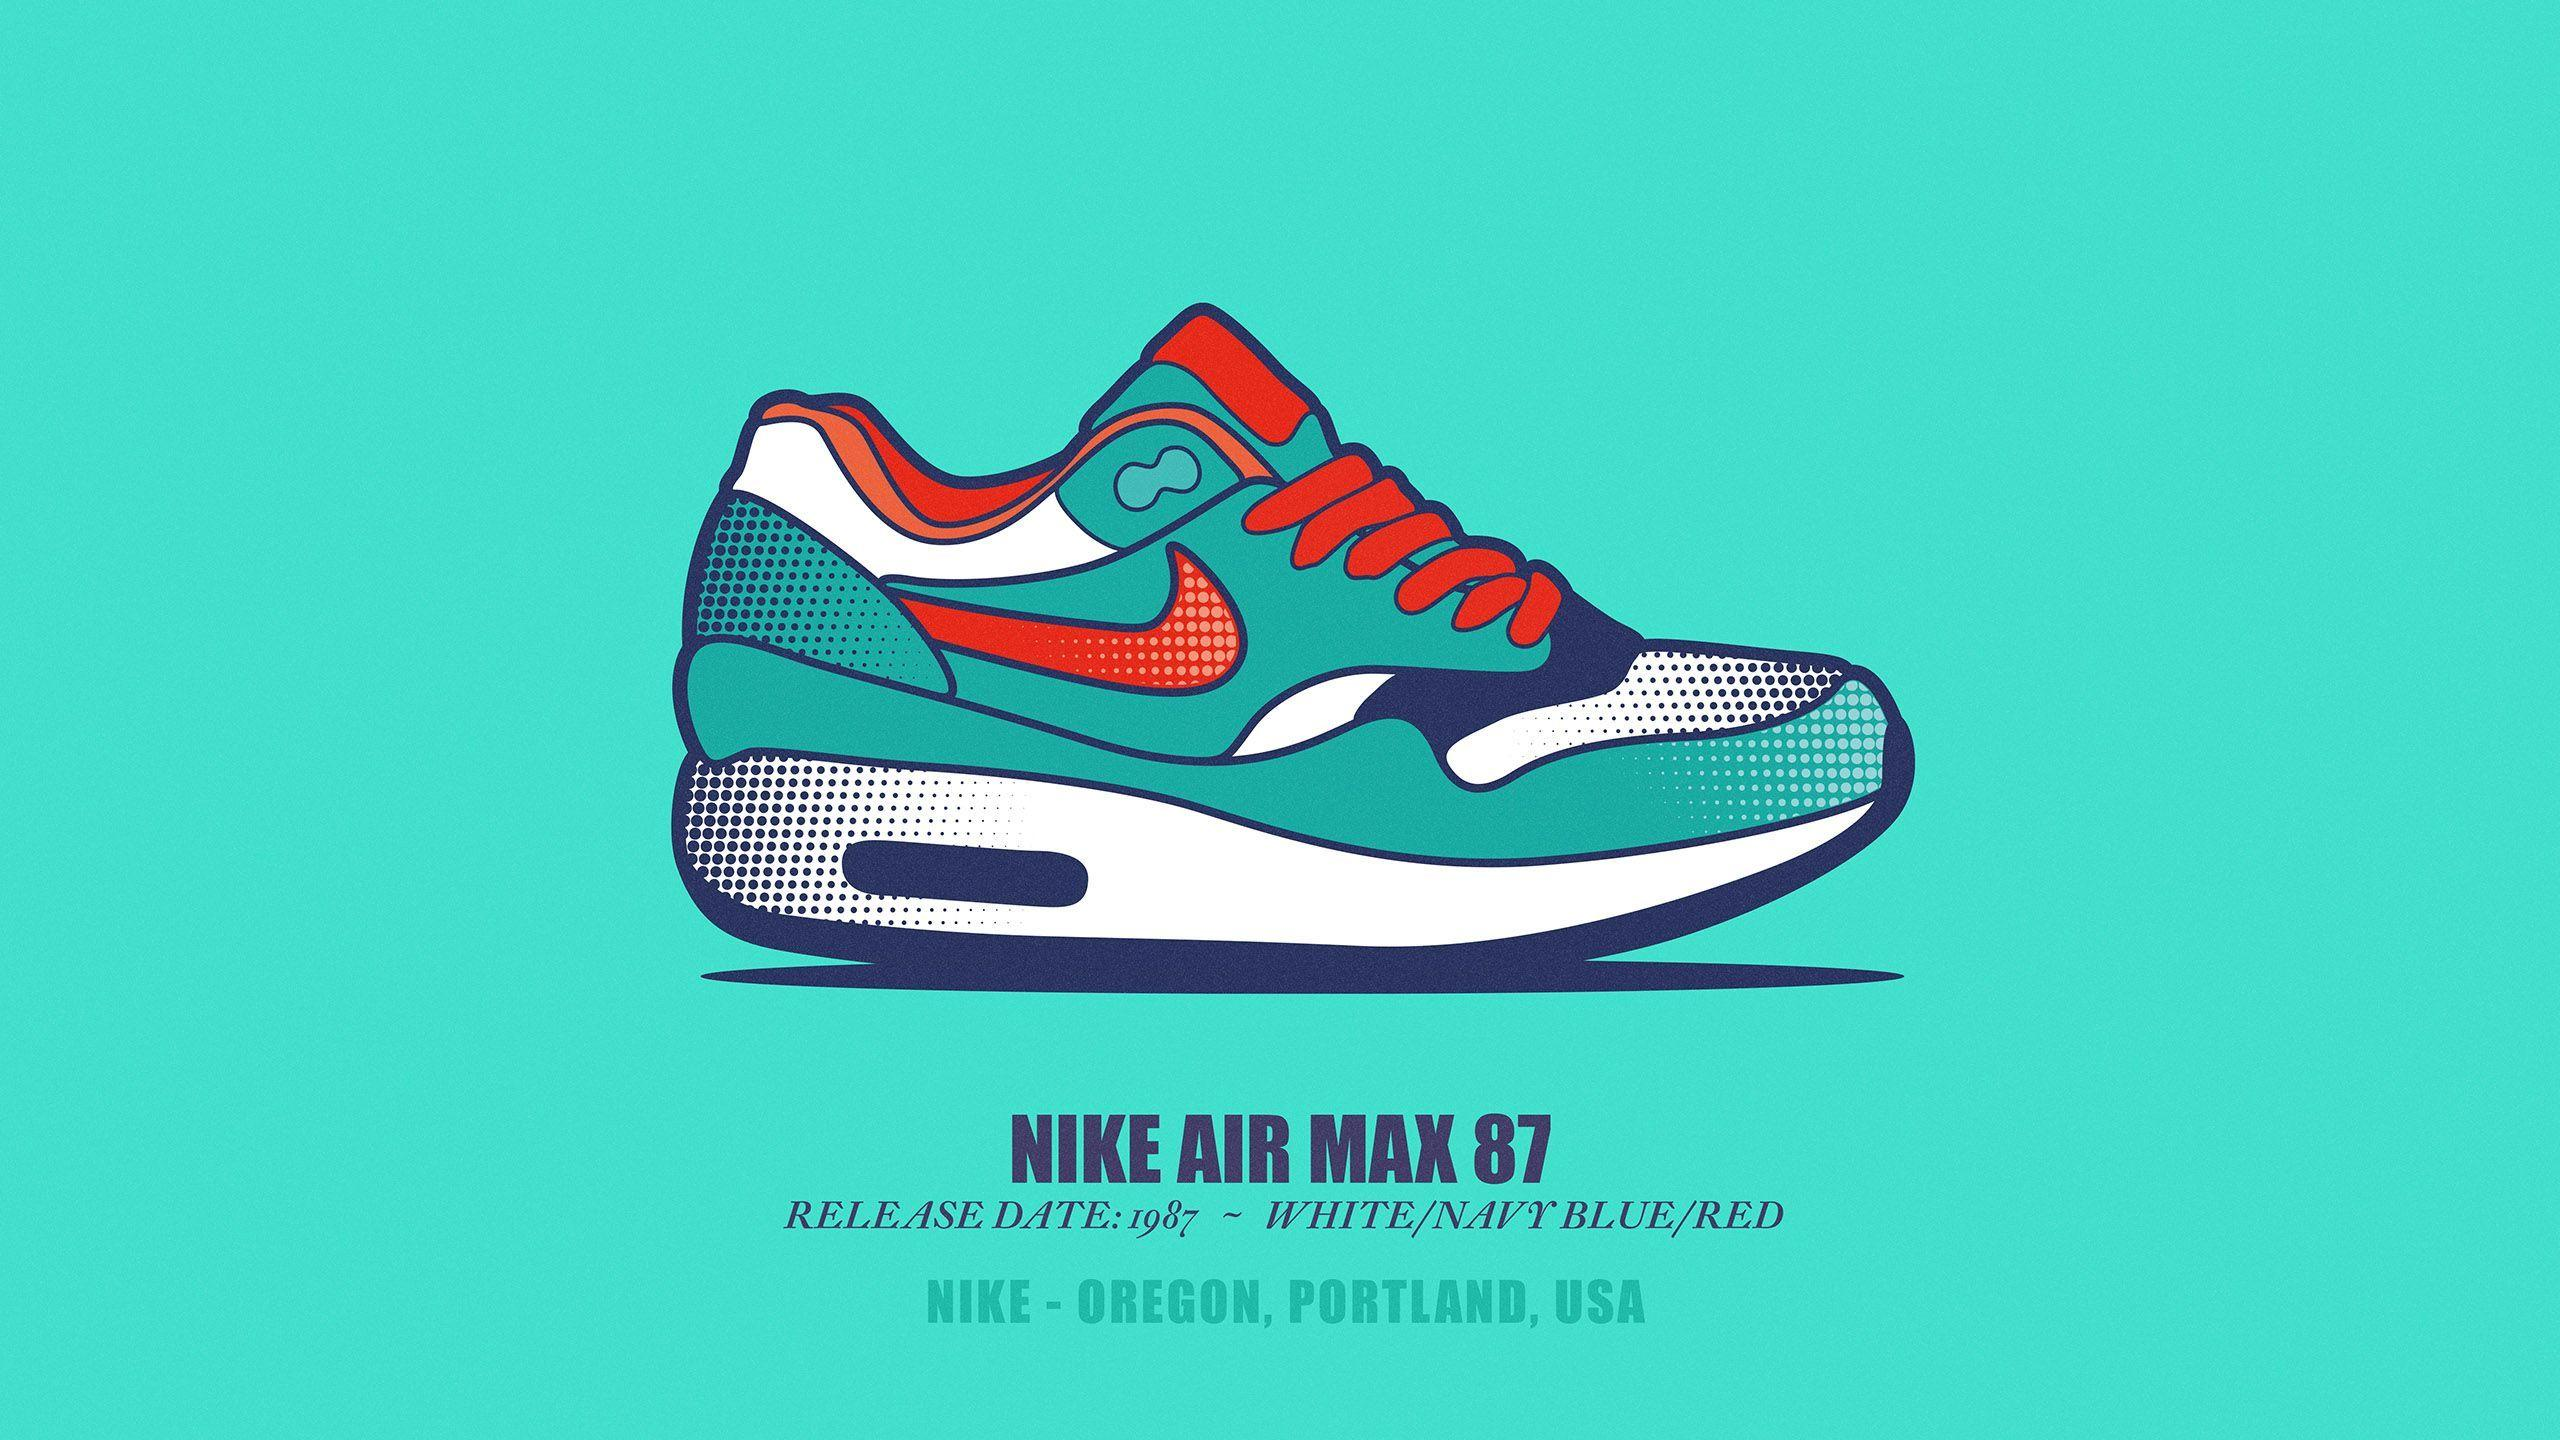 0x0 Nike Air Max Wallpapers